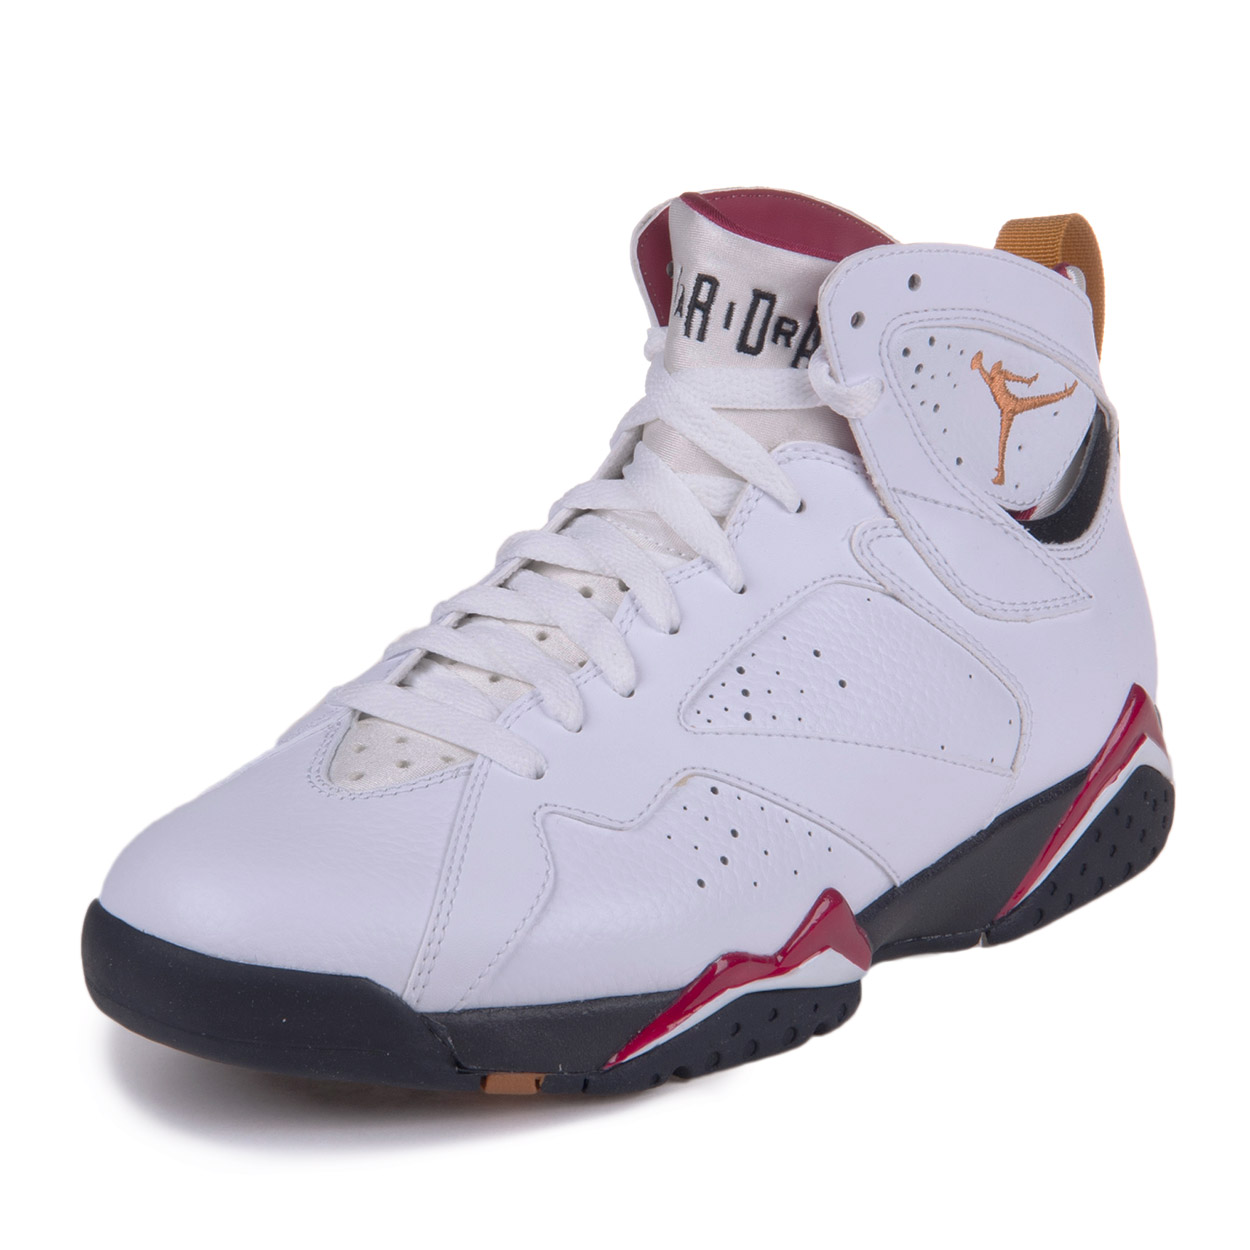 e659b0b58b7 ... order nike mens air jordan 7 retro cardinal white bronze red 304775  5fa43 2b630